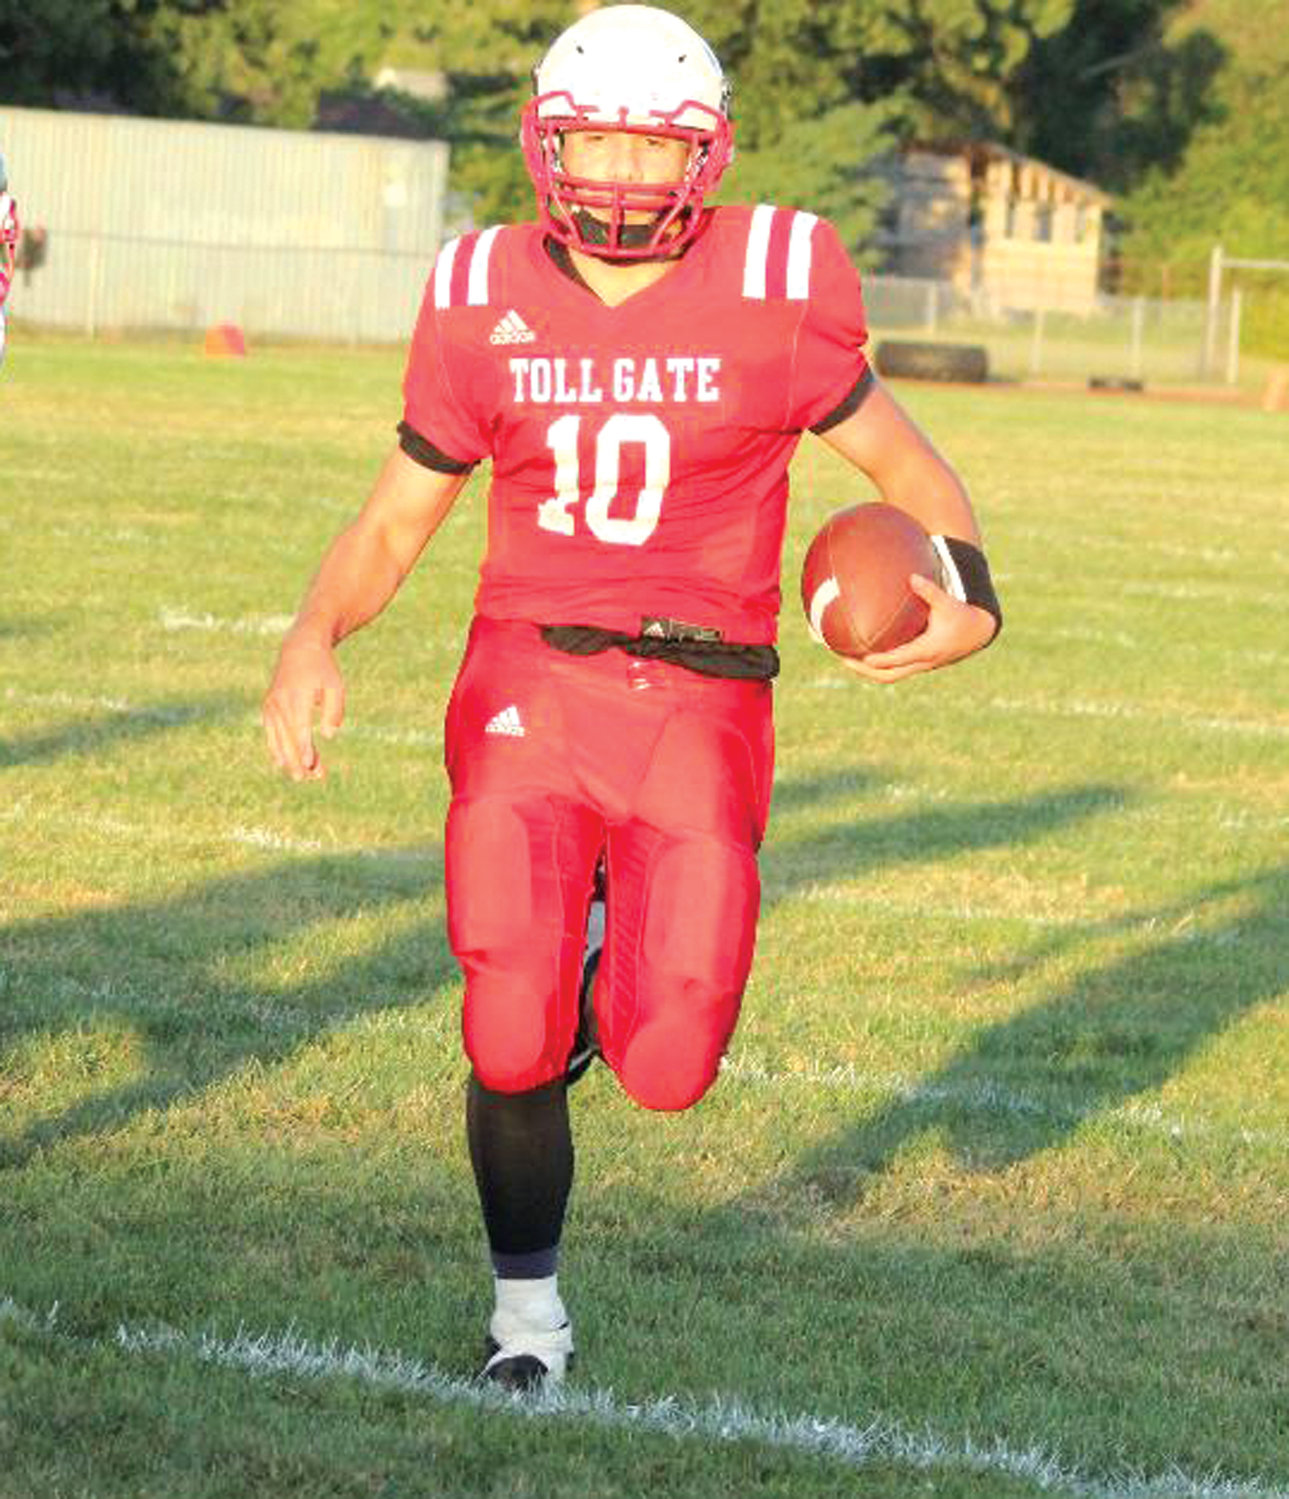 DOWN THE FIELD: Toll Gate's Christian Rapoza.